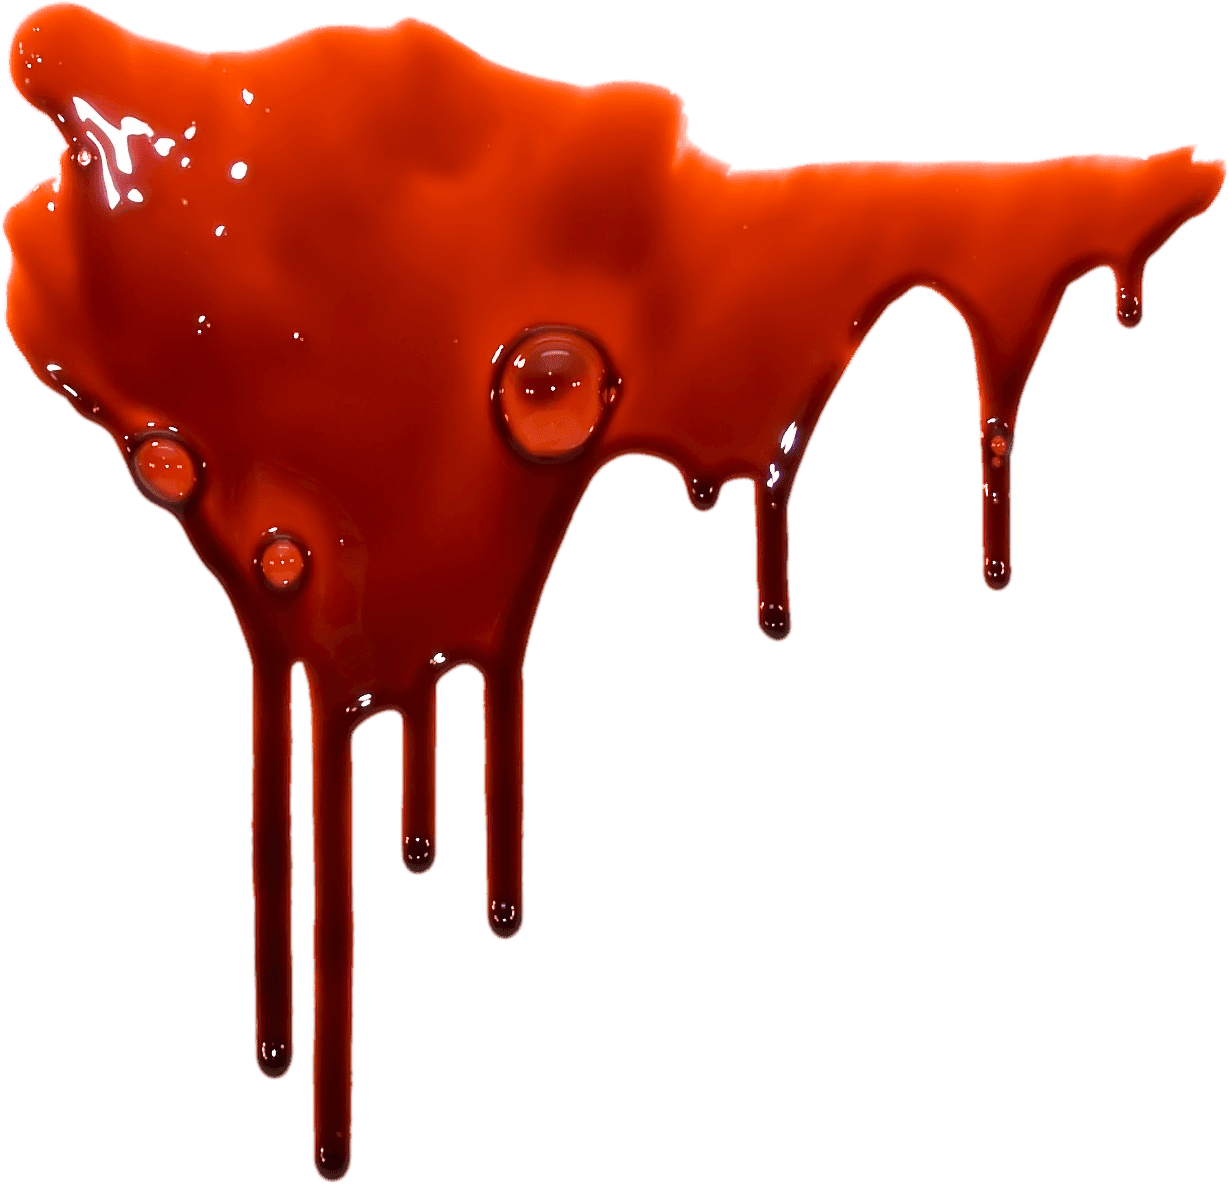 Blood effect png. Real coder